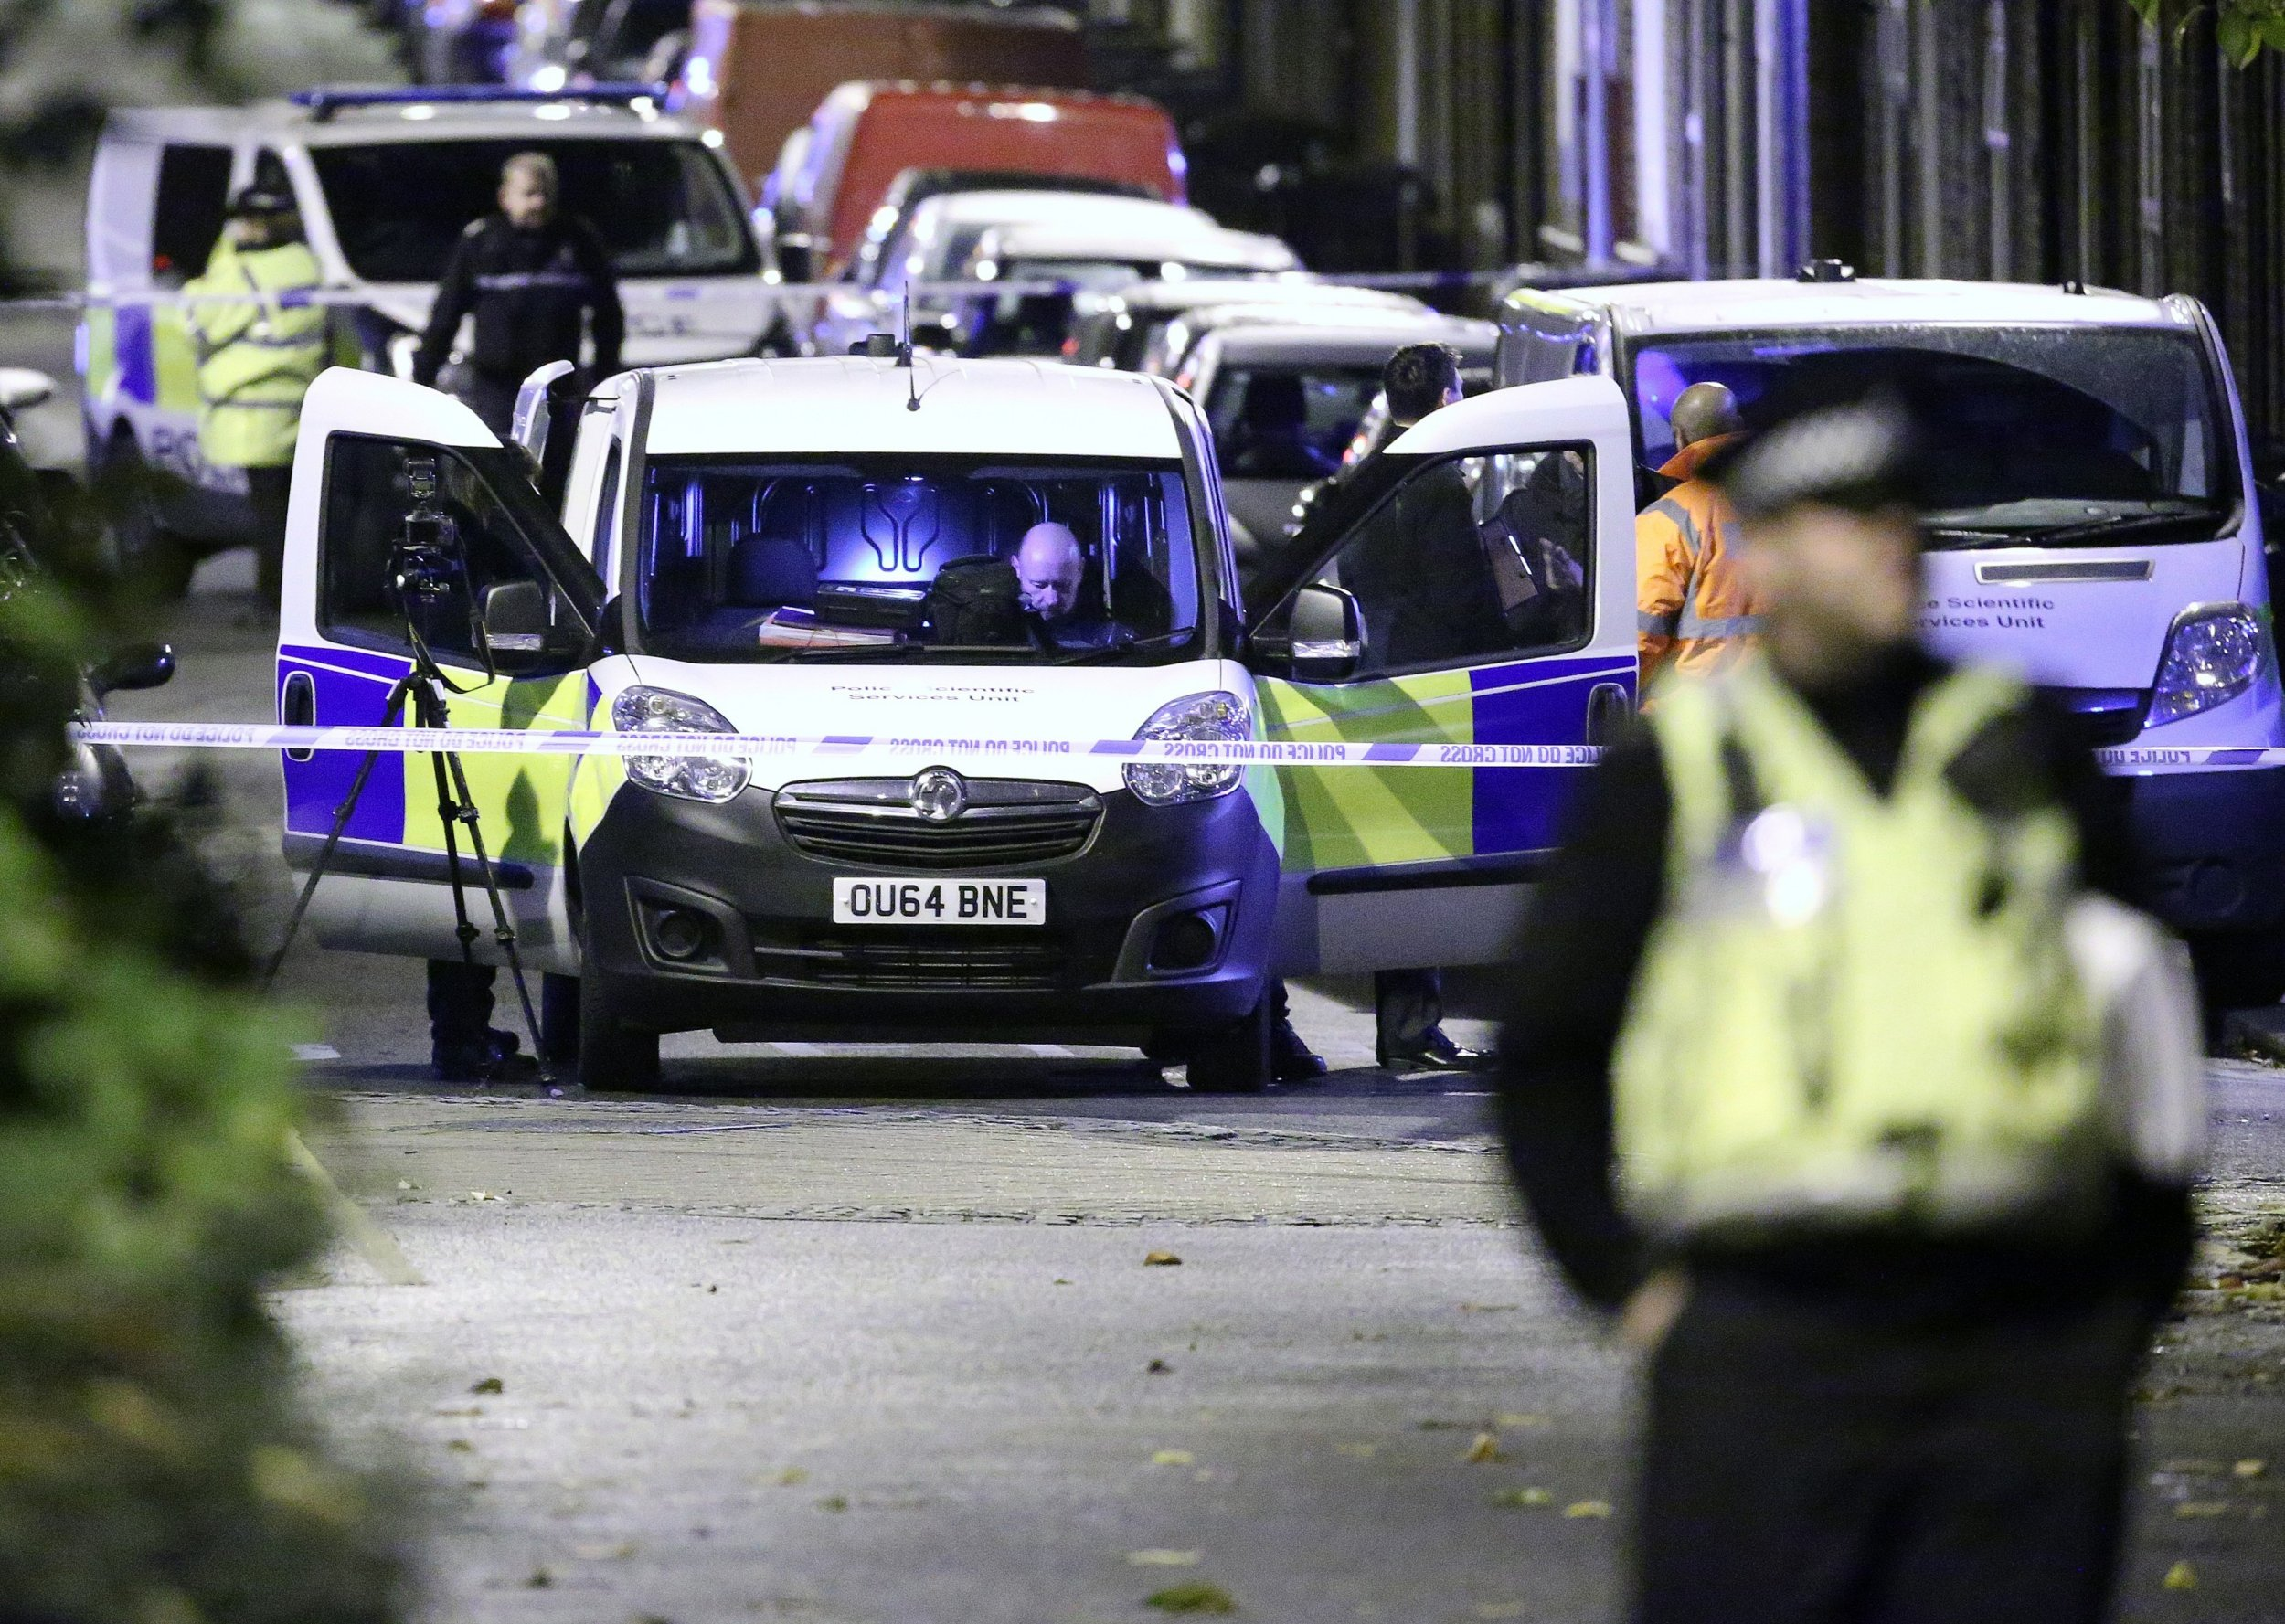 Man shot dead by armed police officer in Luton 'stand-off'